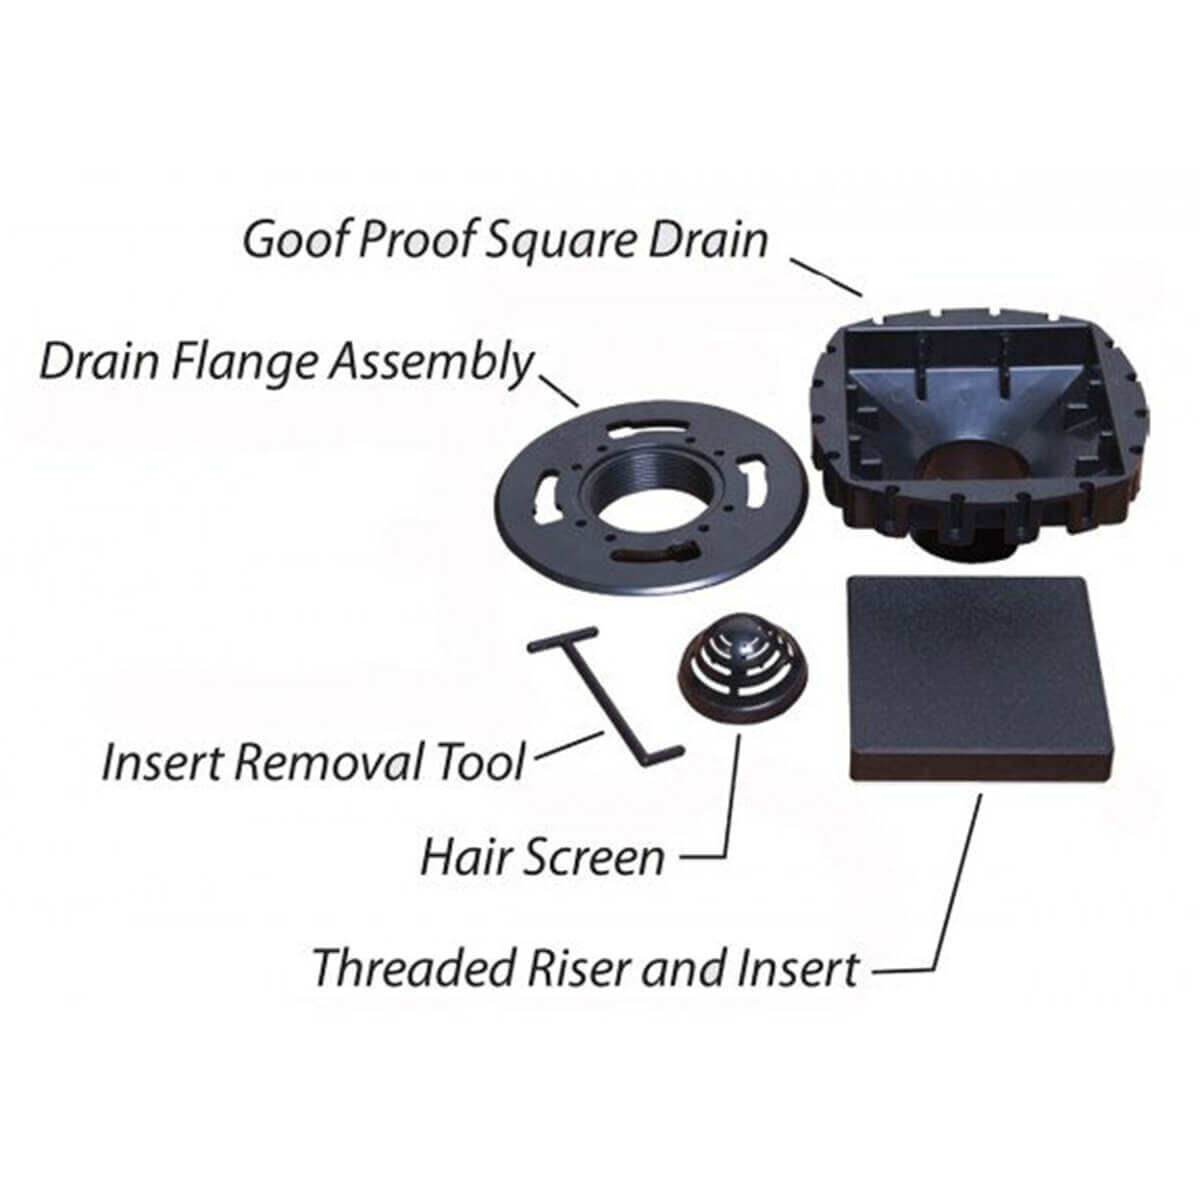 GPSD Goof Proof Square Drain Kit includes drain, flange assembly, hair screen